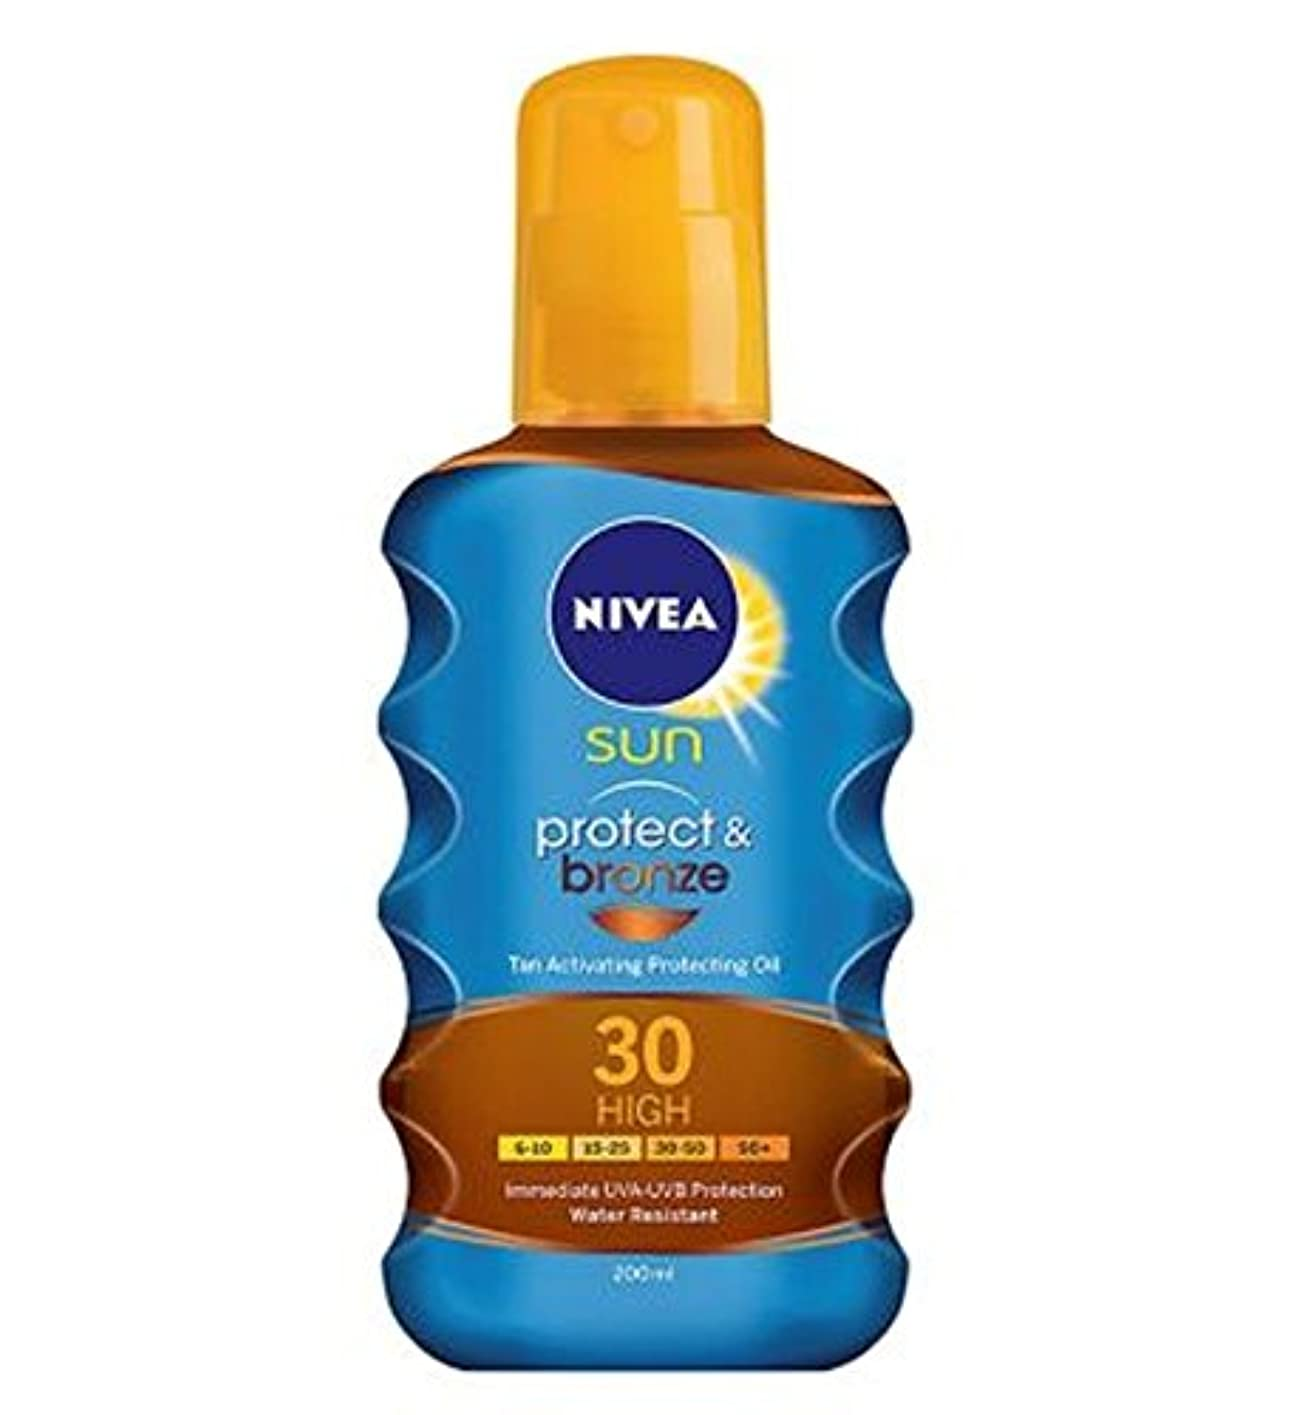 Nivea Sun protect and bronze tan activating protecting oil spf 30 200ml - ニベアの日は、保護し、オイルSpf 30 200ミリリットルを保護ブロンズ...